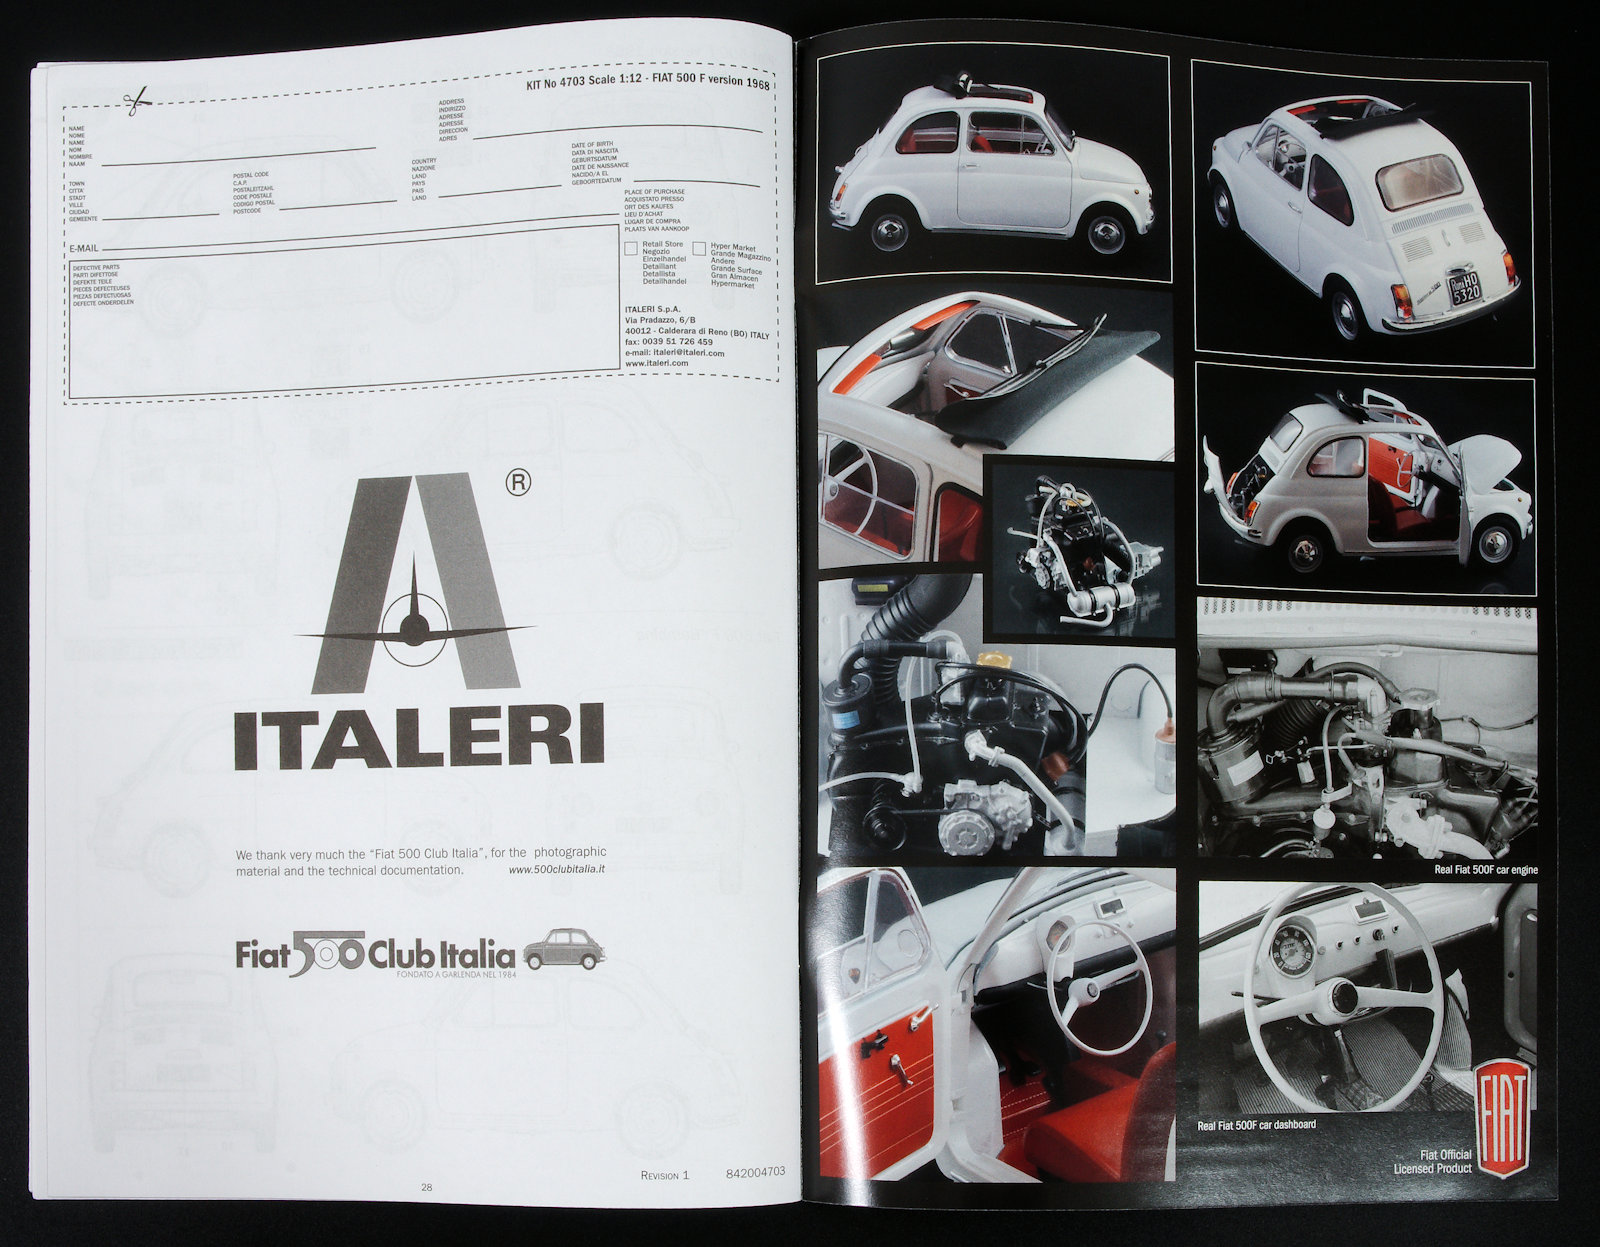 The Modelling News: In-Boxed: 1/12th scale Fiat 500F from Italeri Models